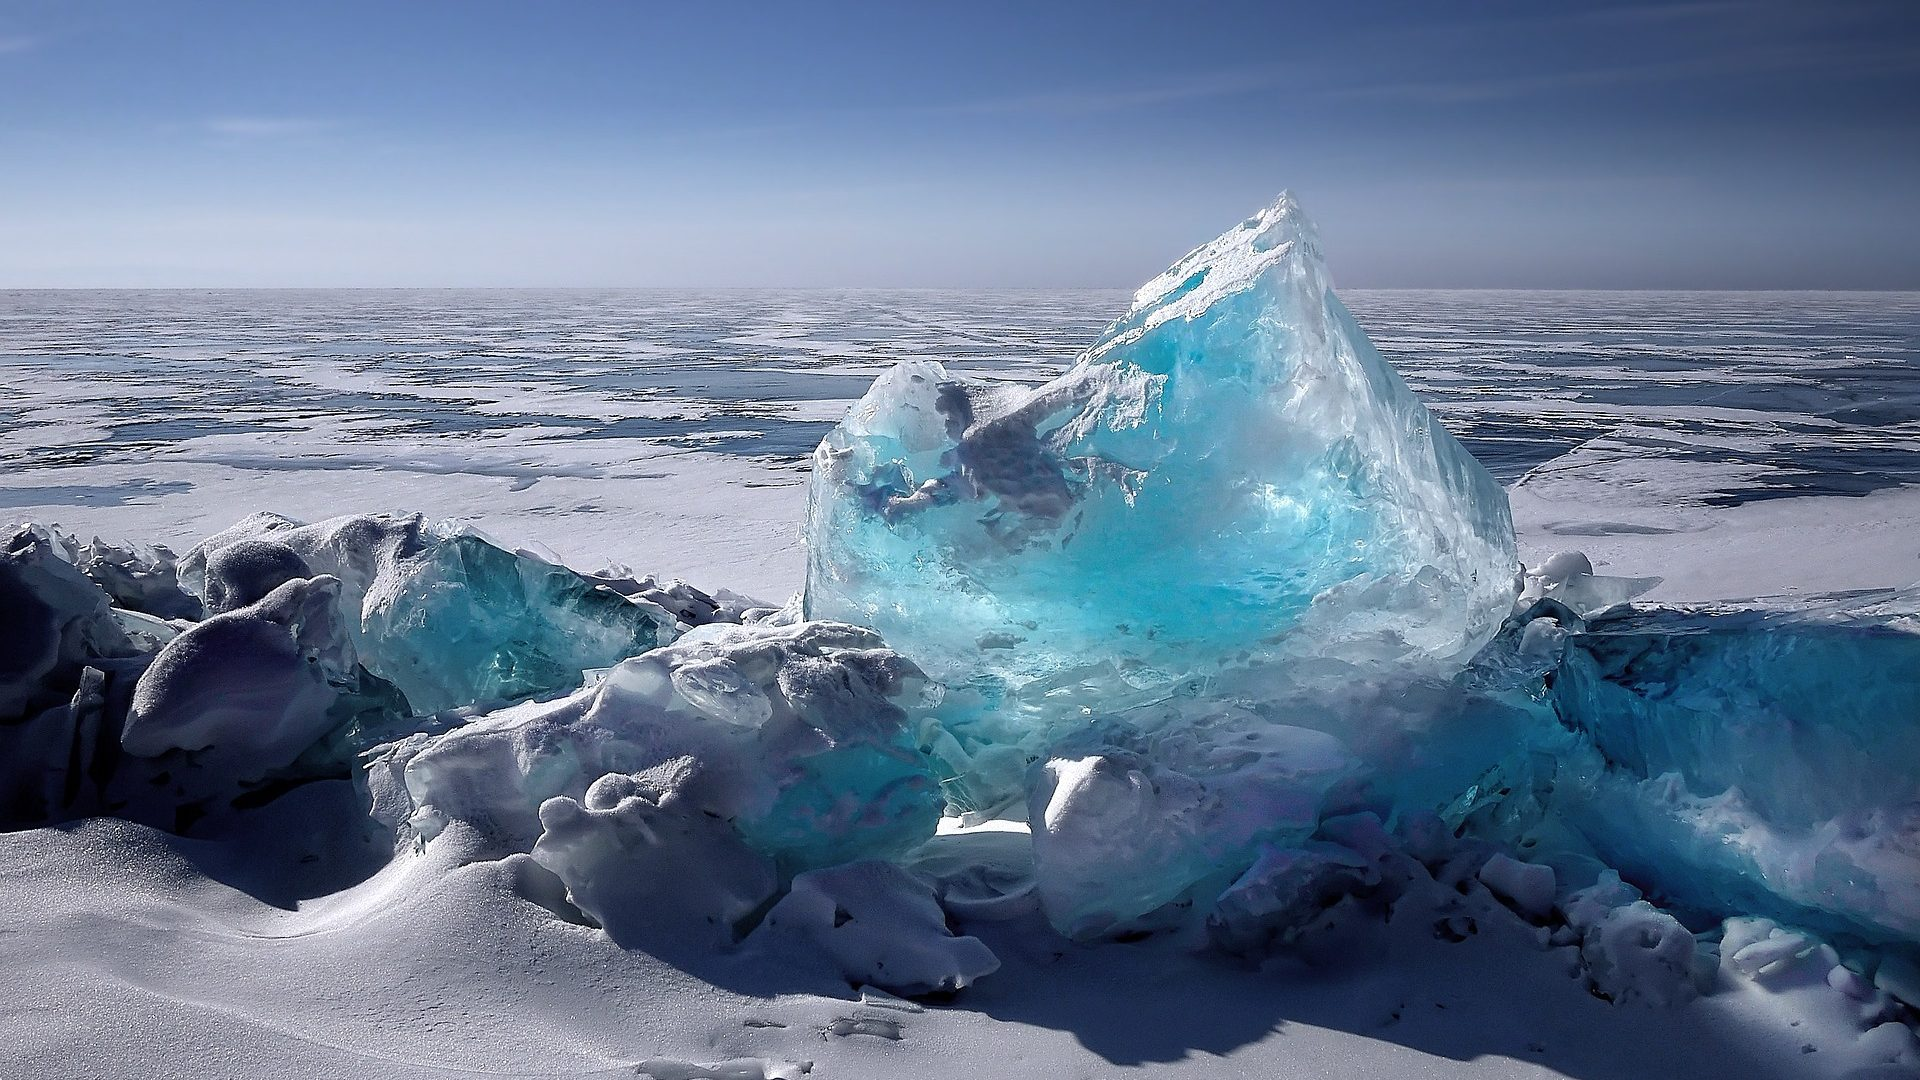 Image: Blue Arctic Ice, showing what it looks like in the North Pole.